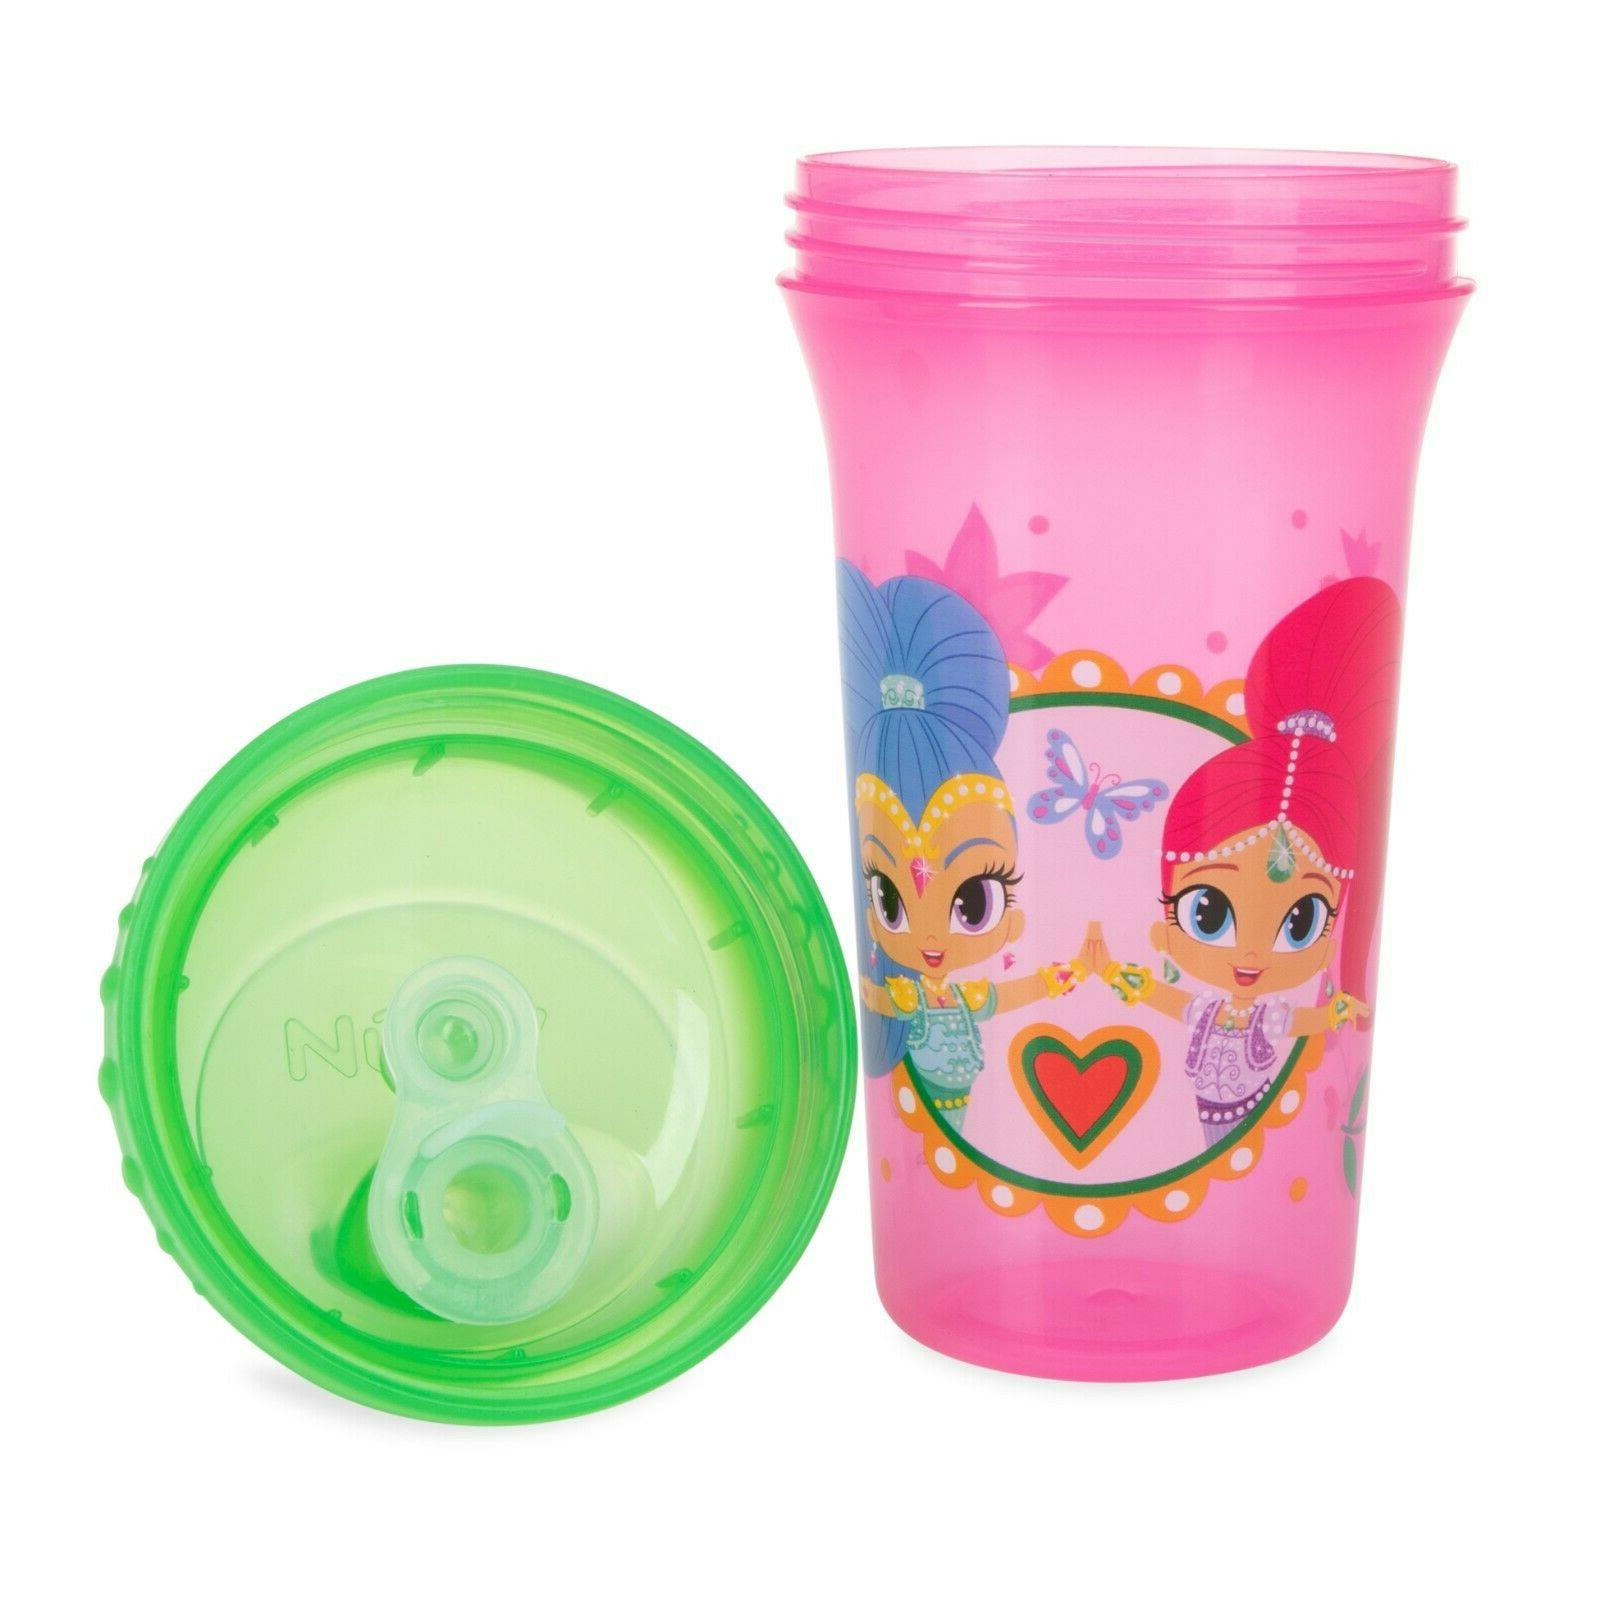 Nuby 3-Pack Nickelodeon & Shine Sippy Spout